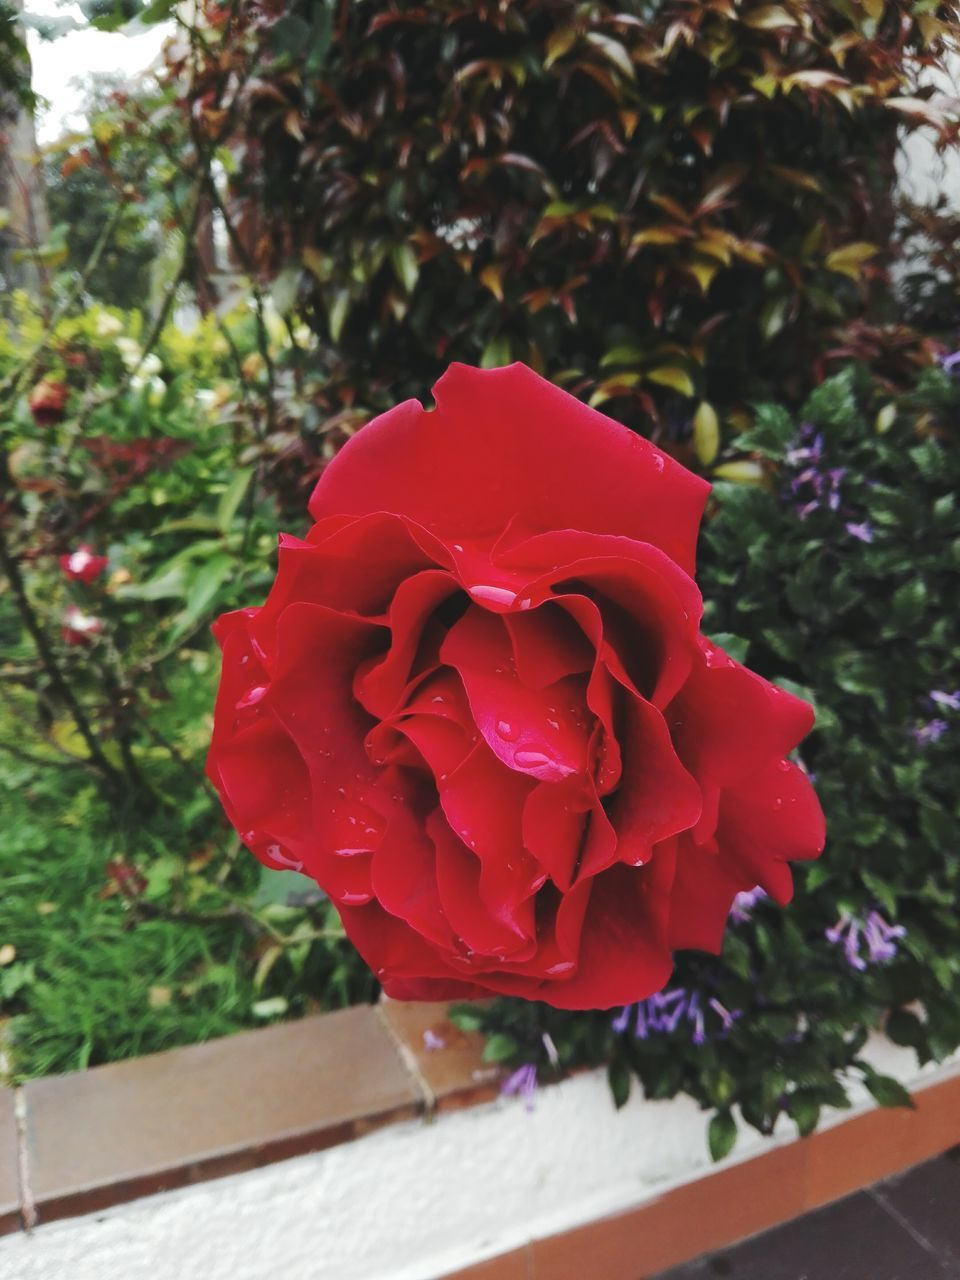 flower, beauty in nature, petal, nature, fragility, rose - flower, red, growth, flower head, freshness, plant, no people, day, blooming, outdoors, close-up